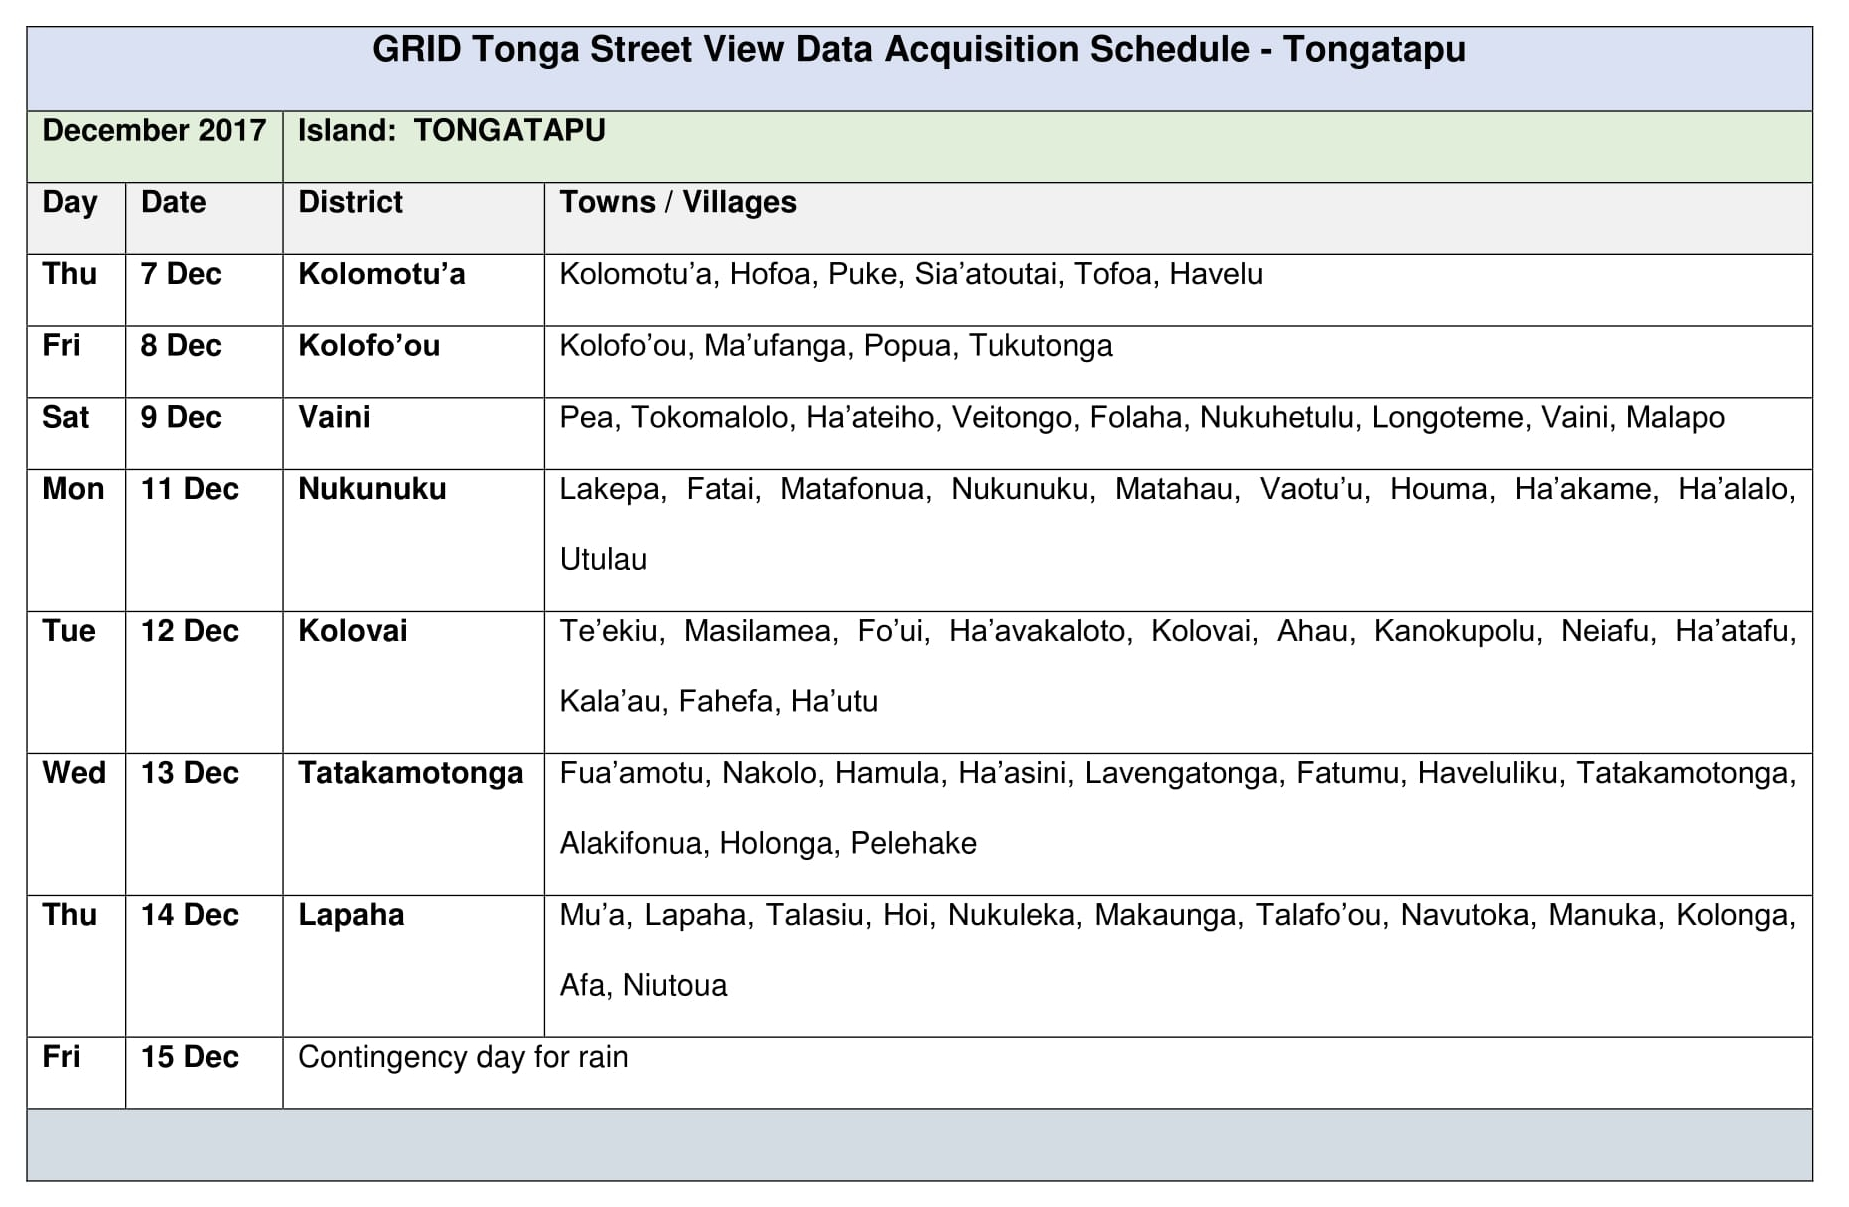 GRID Tonga Street View Data Acquisition Schedule-1.jpg